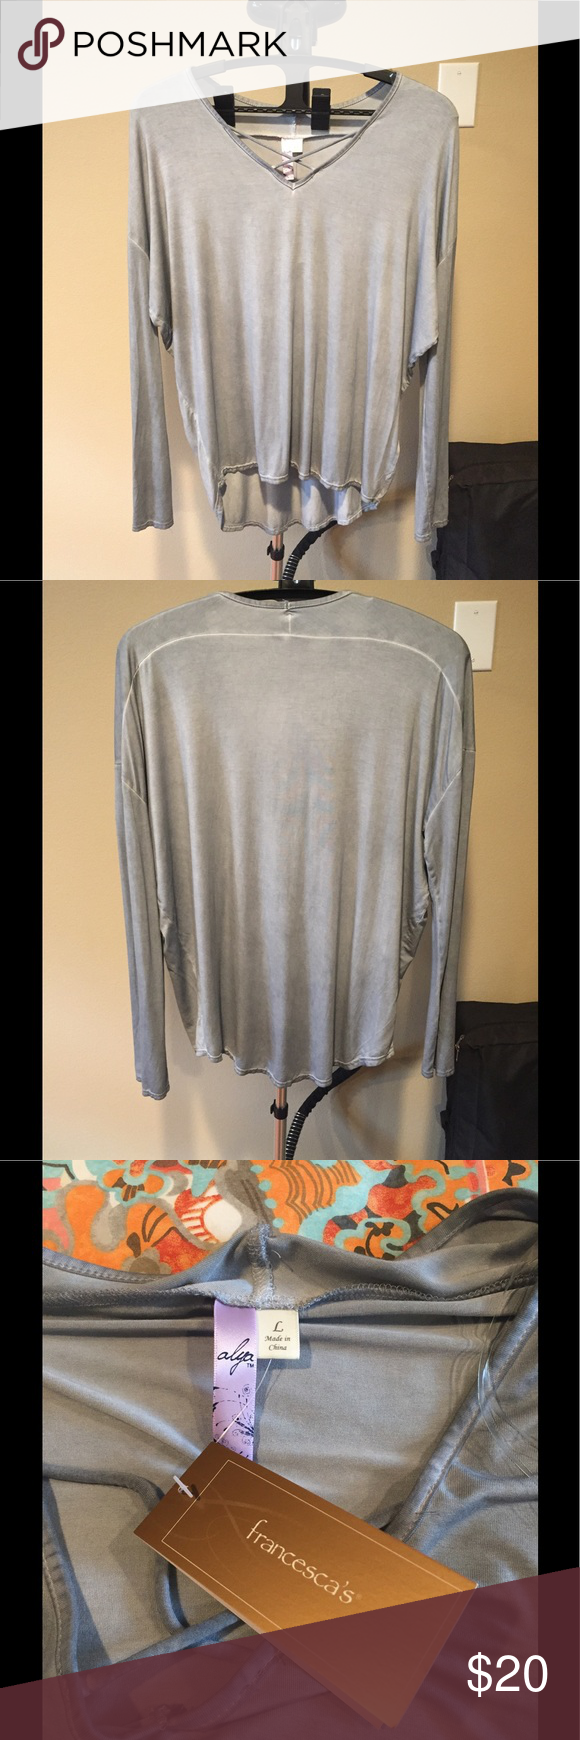 NWT LONG-SLEEVE TUNIC STYLE TOP NWT Gray-Blue Long-sleeve Top. Looks great with leggings, jeans or a long skirt. This top is very flattering!!! Alya Tops Tees - Long Sleeve